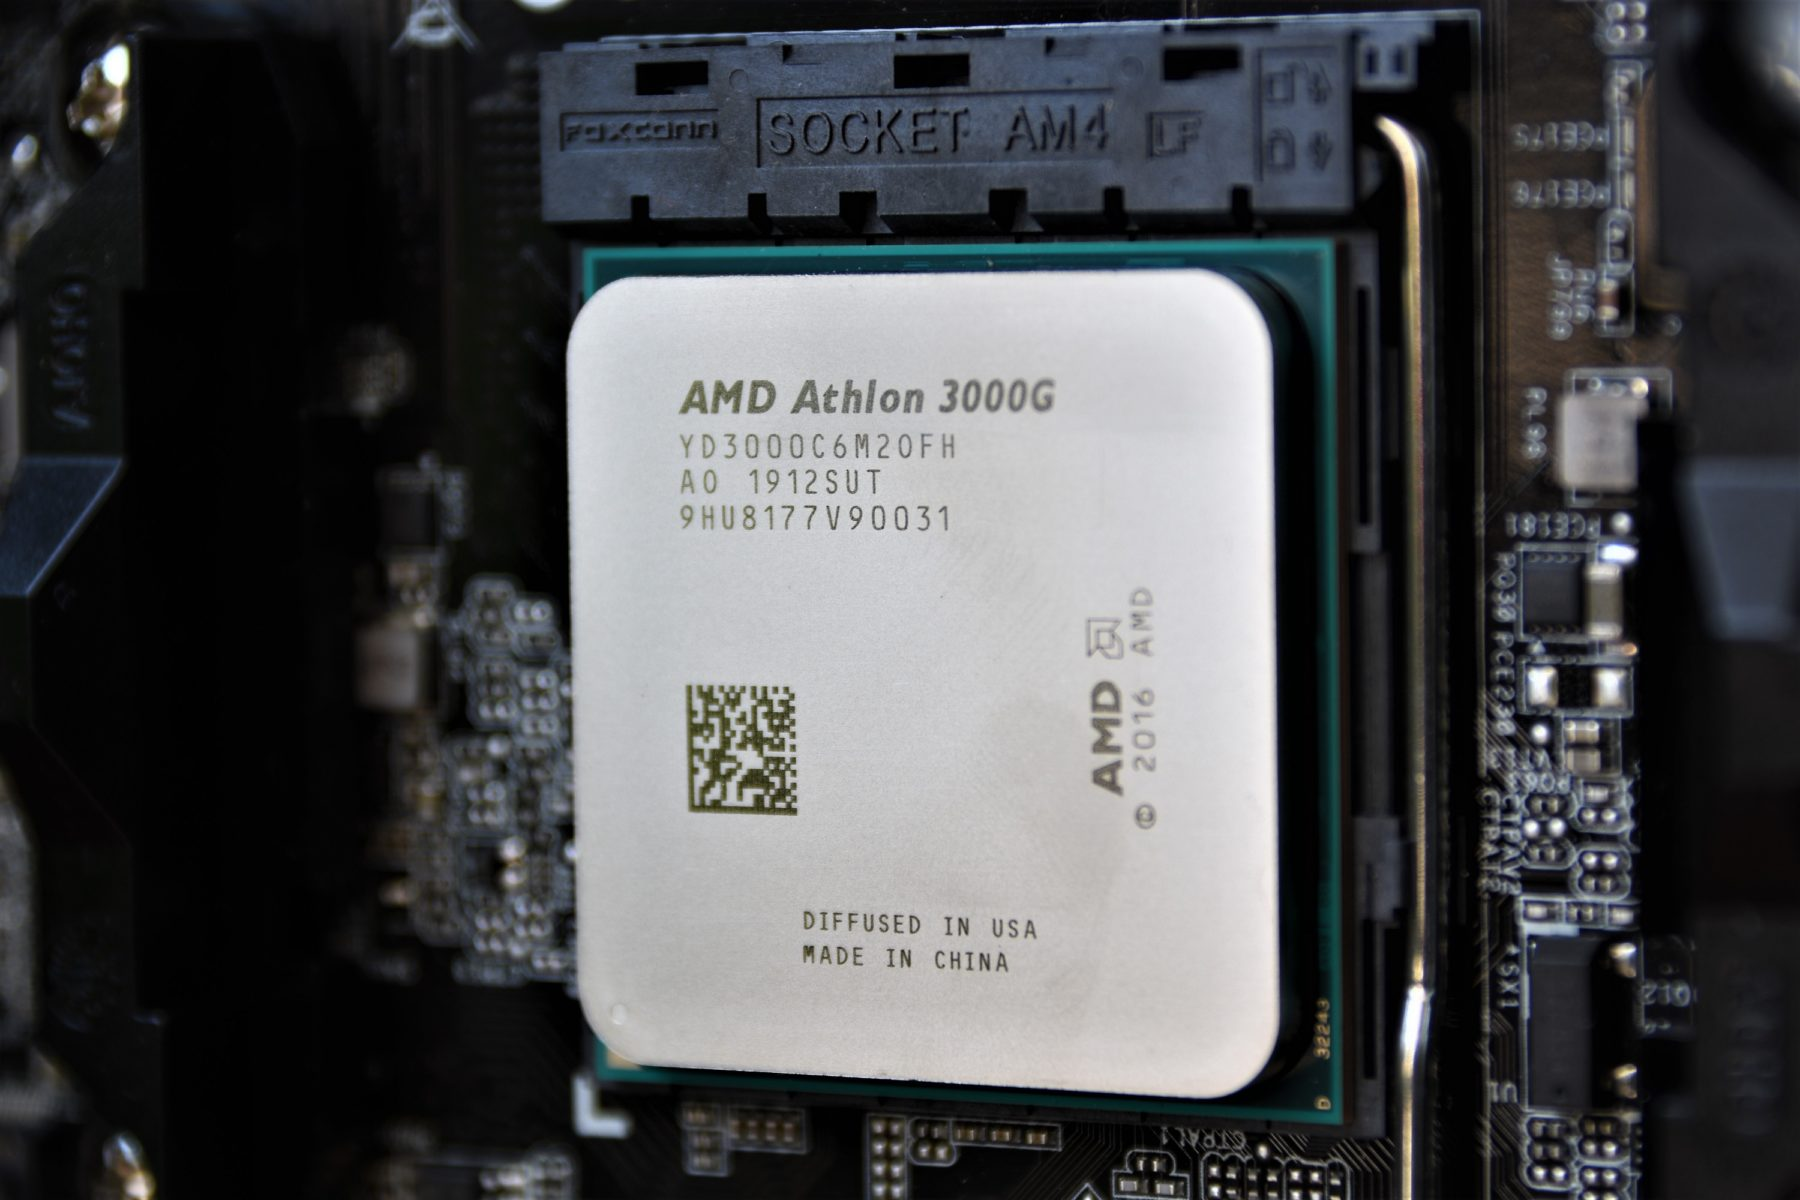 Review AMD Athlon 3000G / ASRock Desk Mini A300